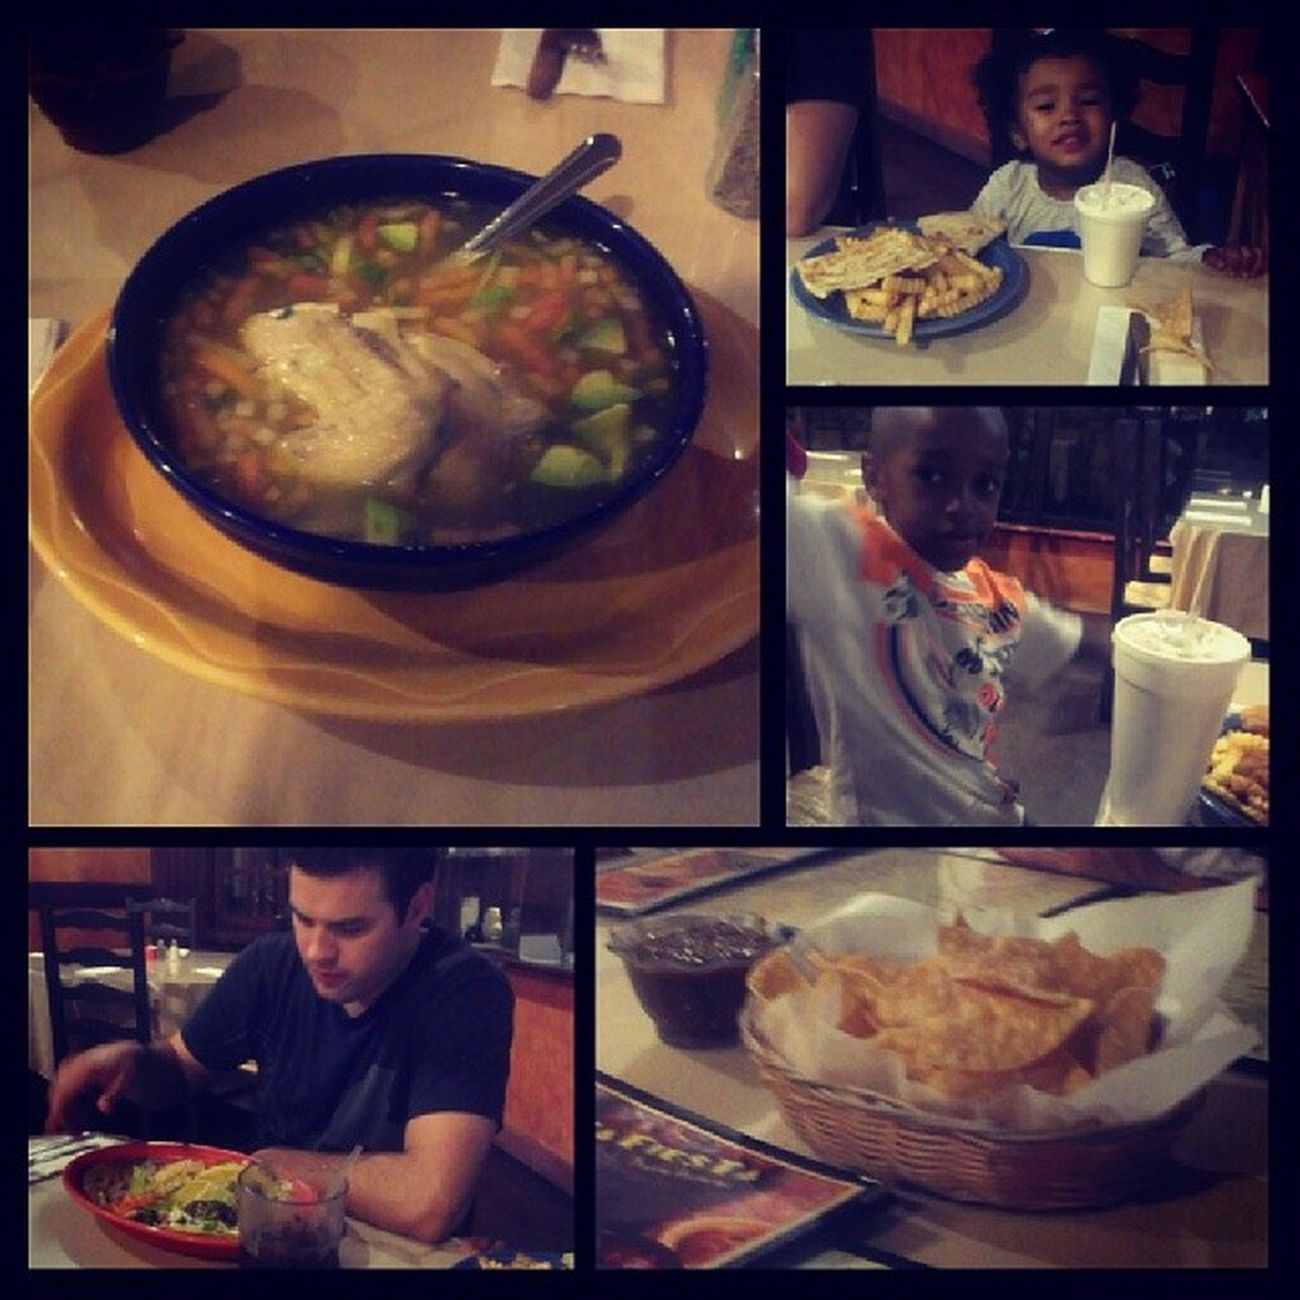 #familynight #dinner at #fajitafiesta Dinner Familynight Fajitafiesta